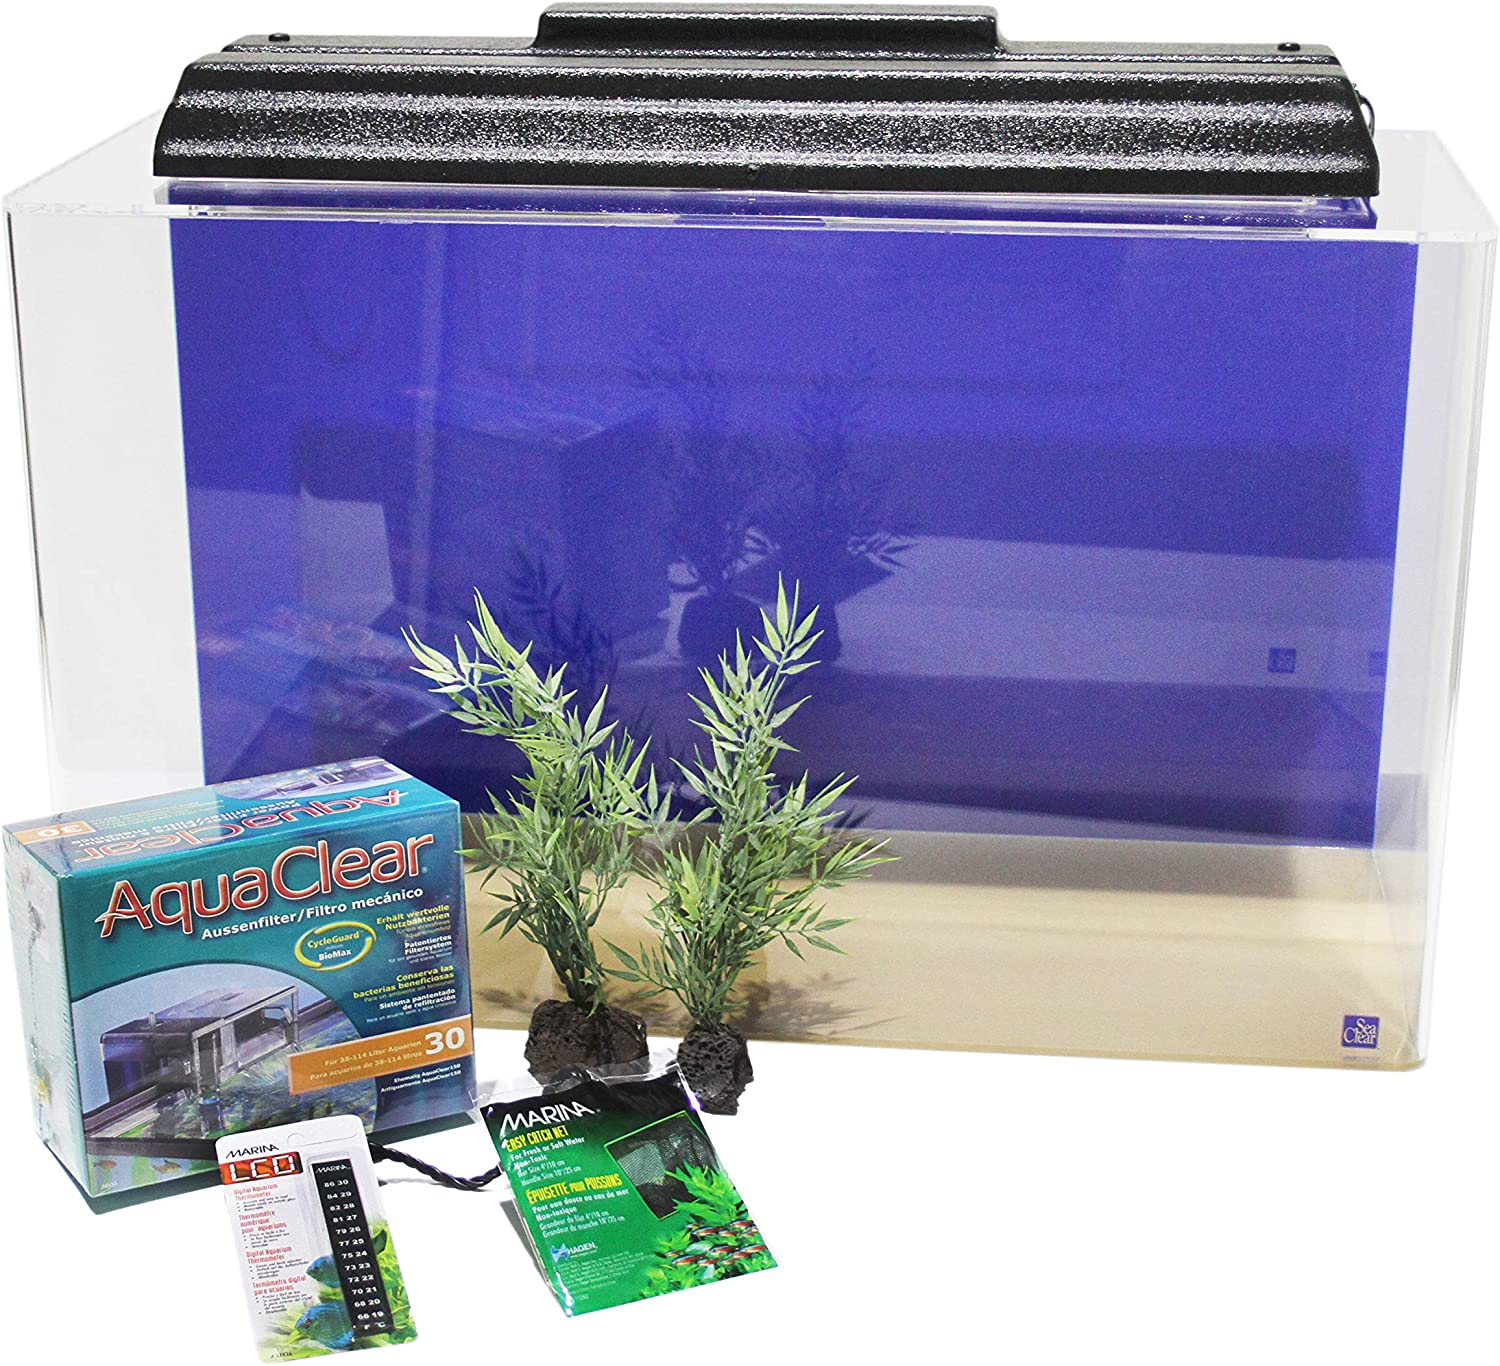 SeaClear Acrylic Aquarium Junior Executive Kit